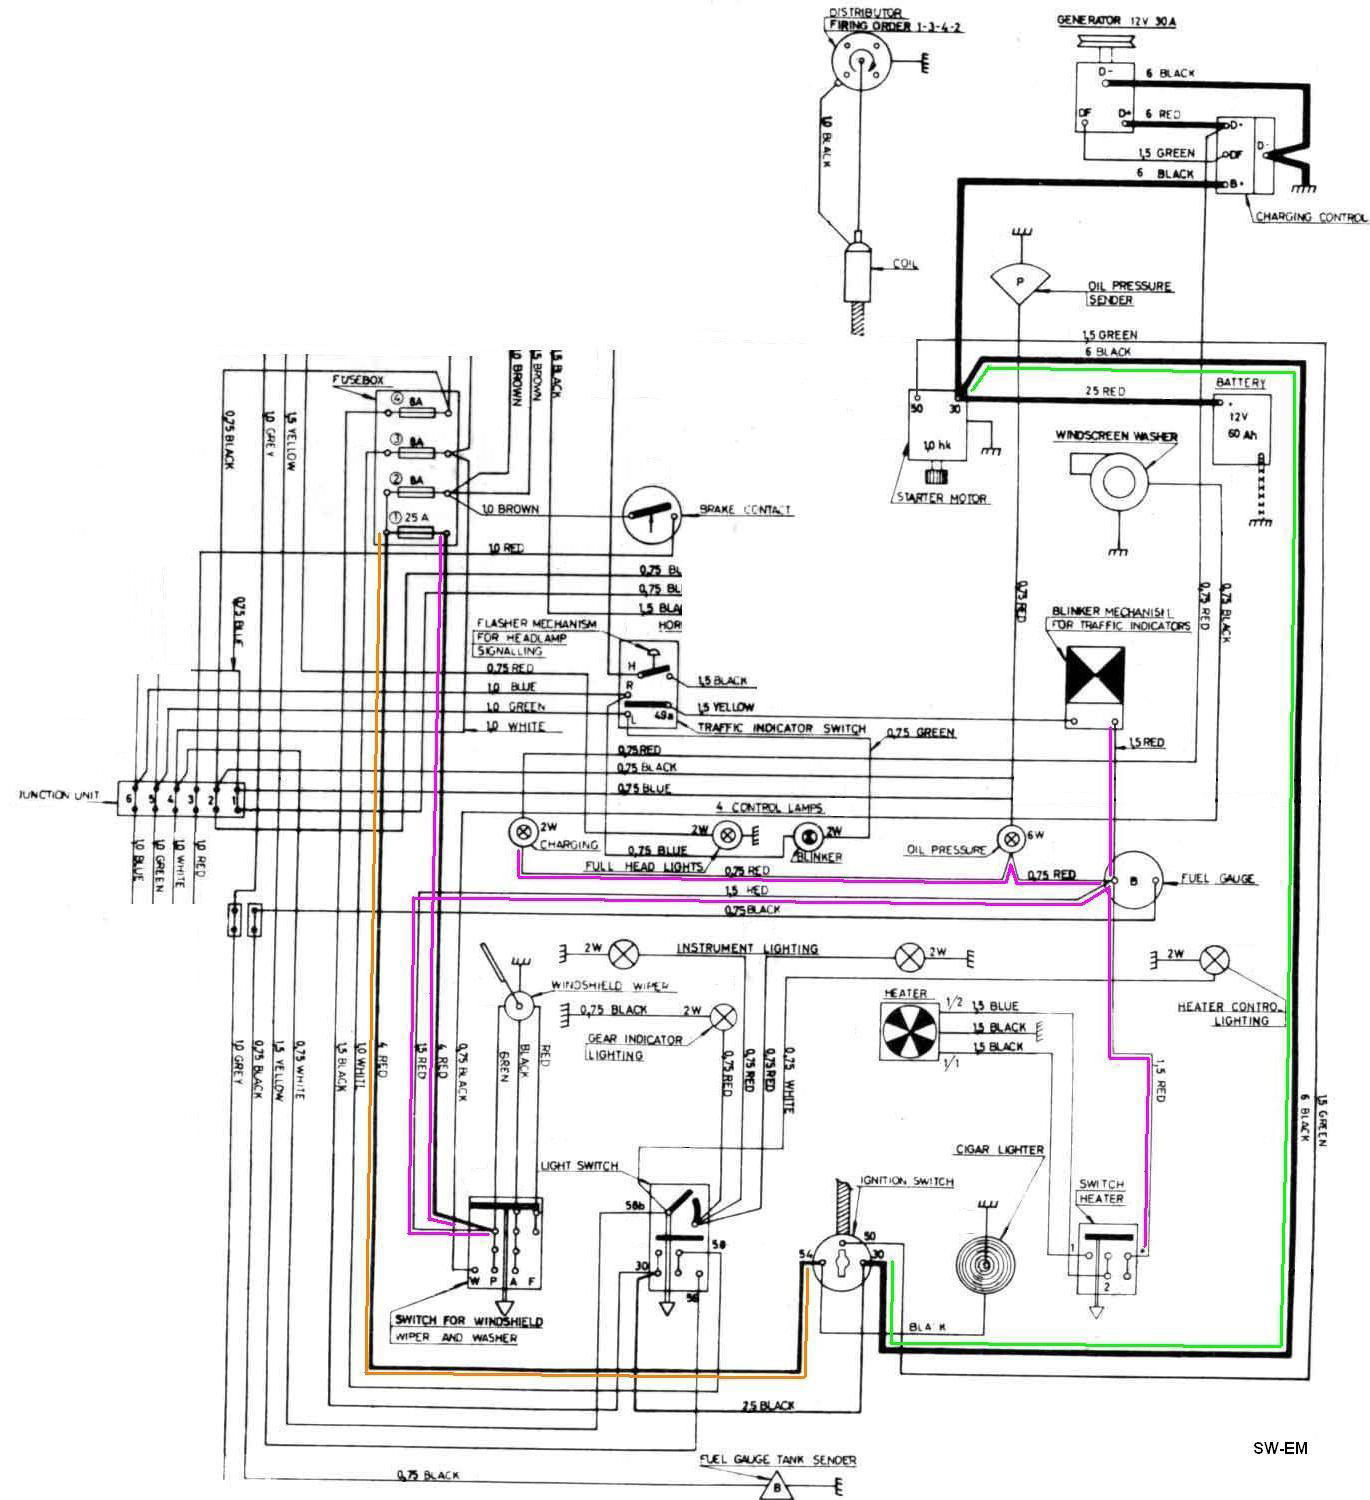 IGN SW wiring diag 122 markup car ignition switch wiring diagram universal ignition switch 1979 volvo 242 dl wiring diagram at aneh.co